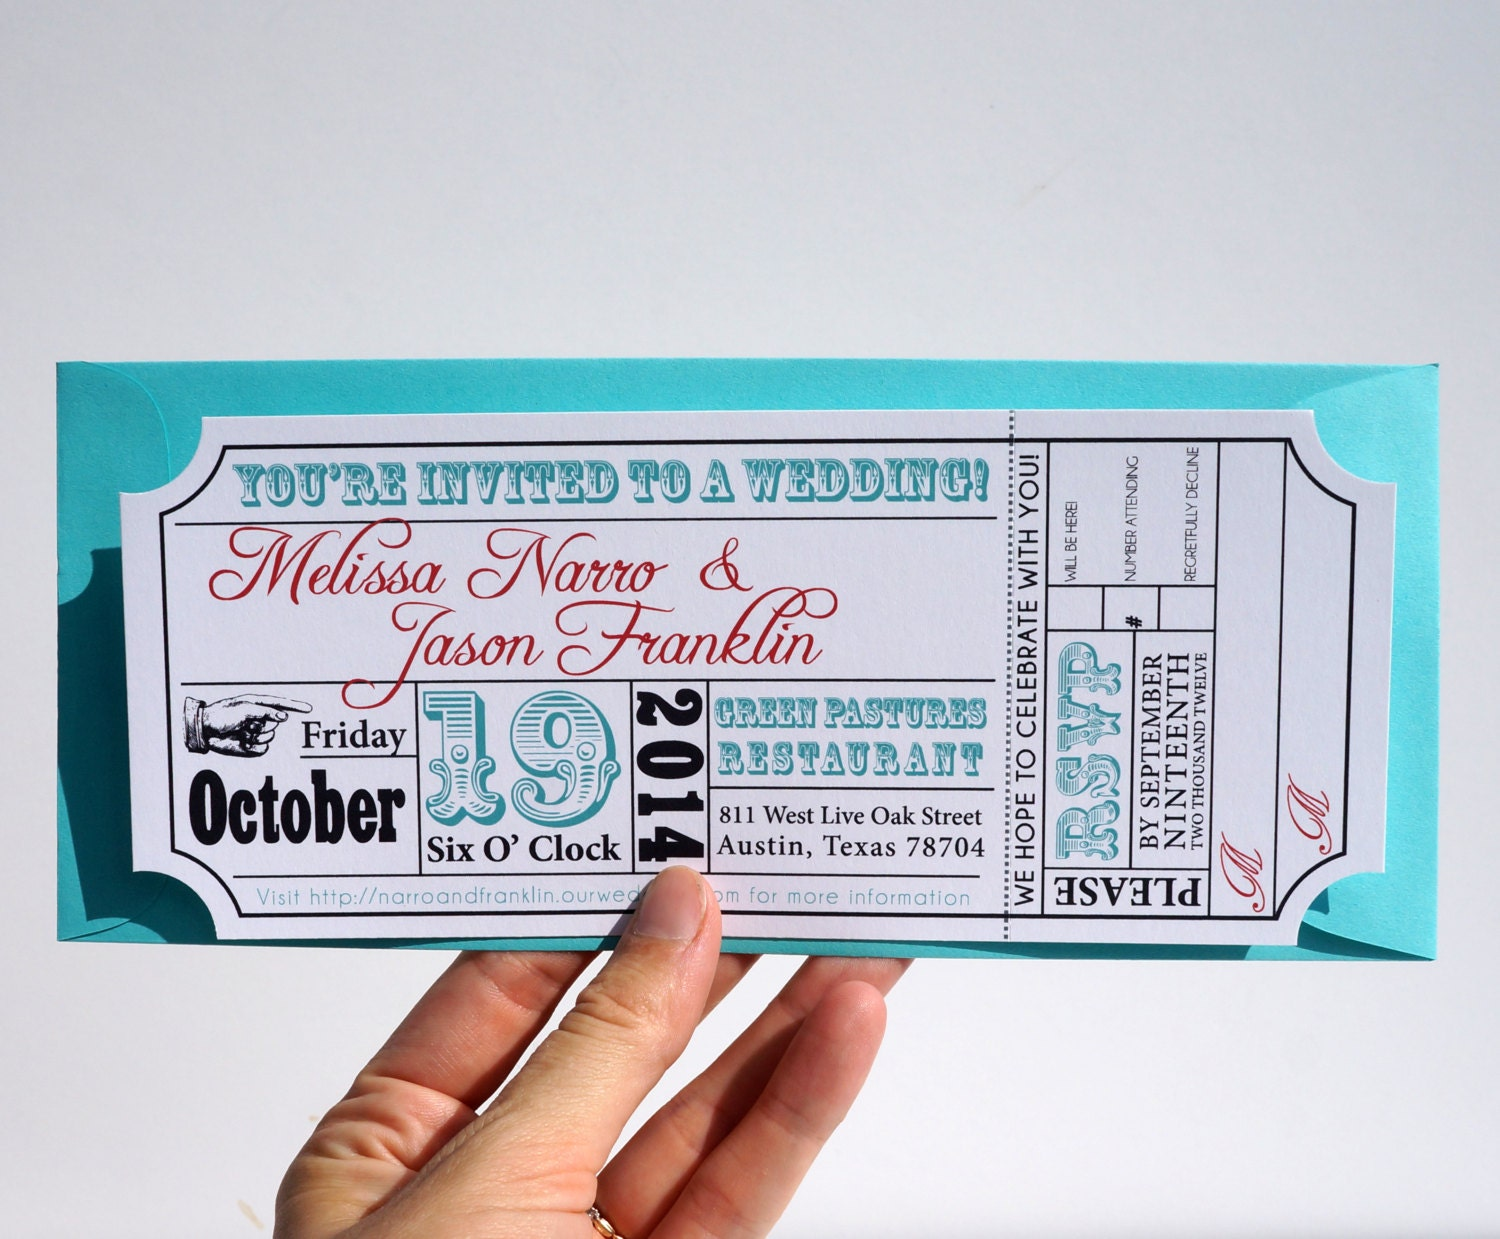 Awesome 🔎zoom Regarding Invitations That Look Like Concert Tickets